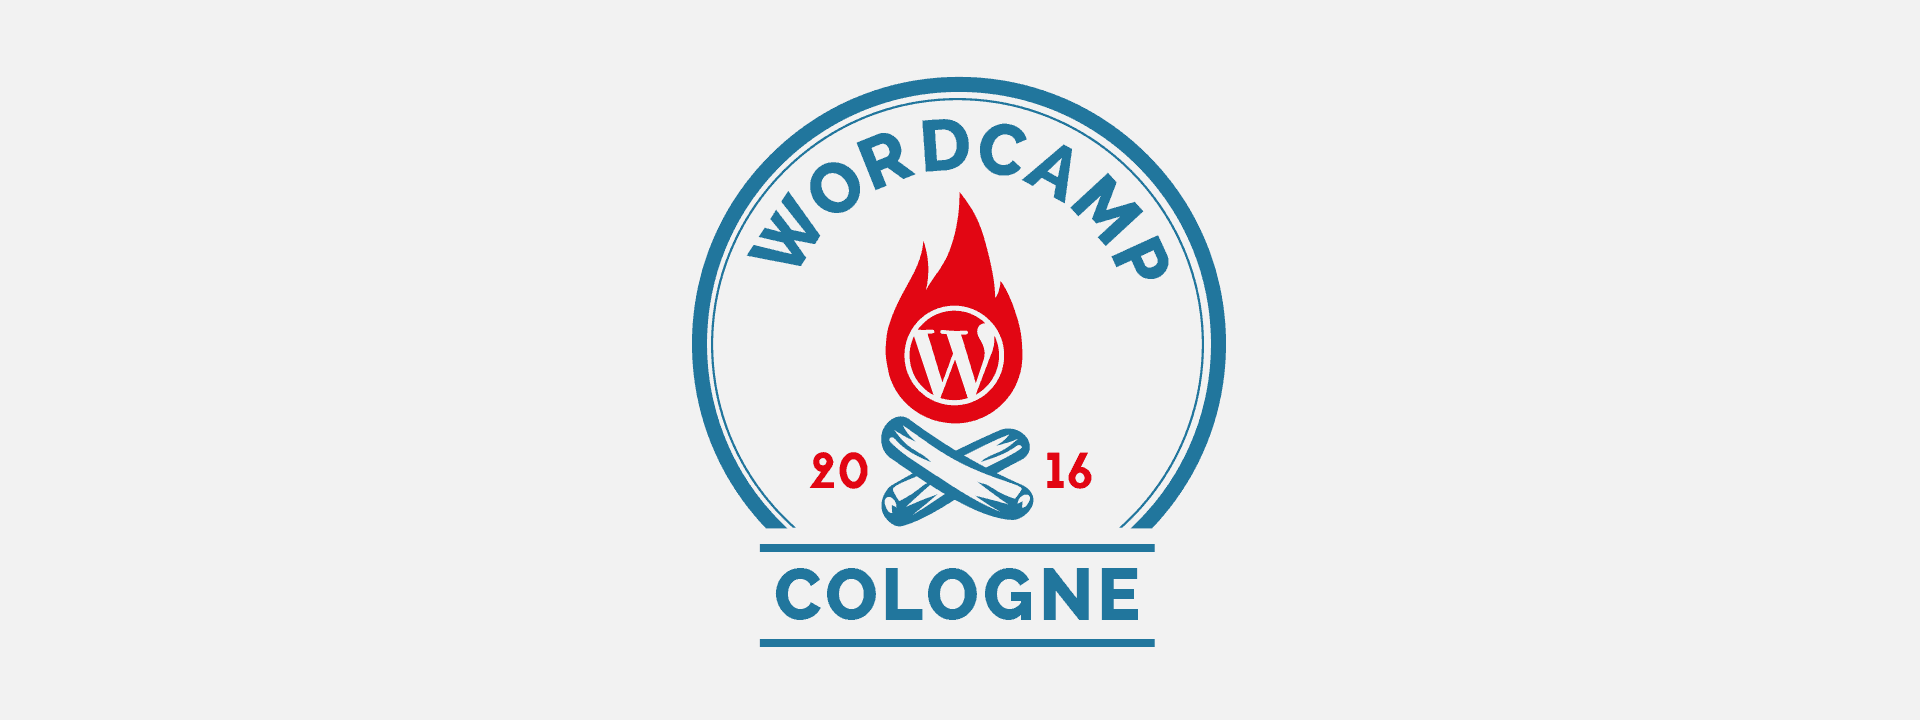 WordCamp Cologne 2016: Recap